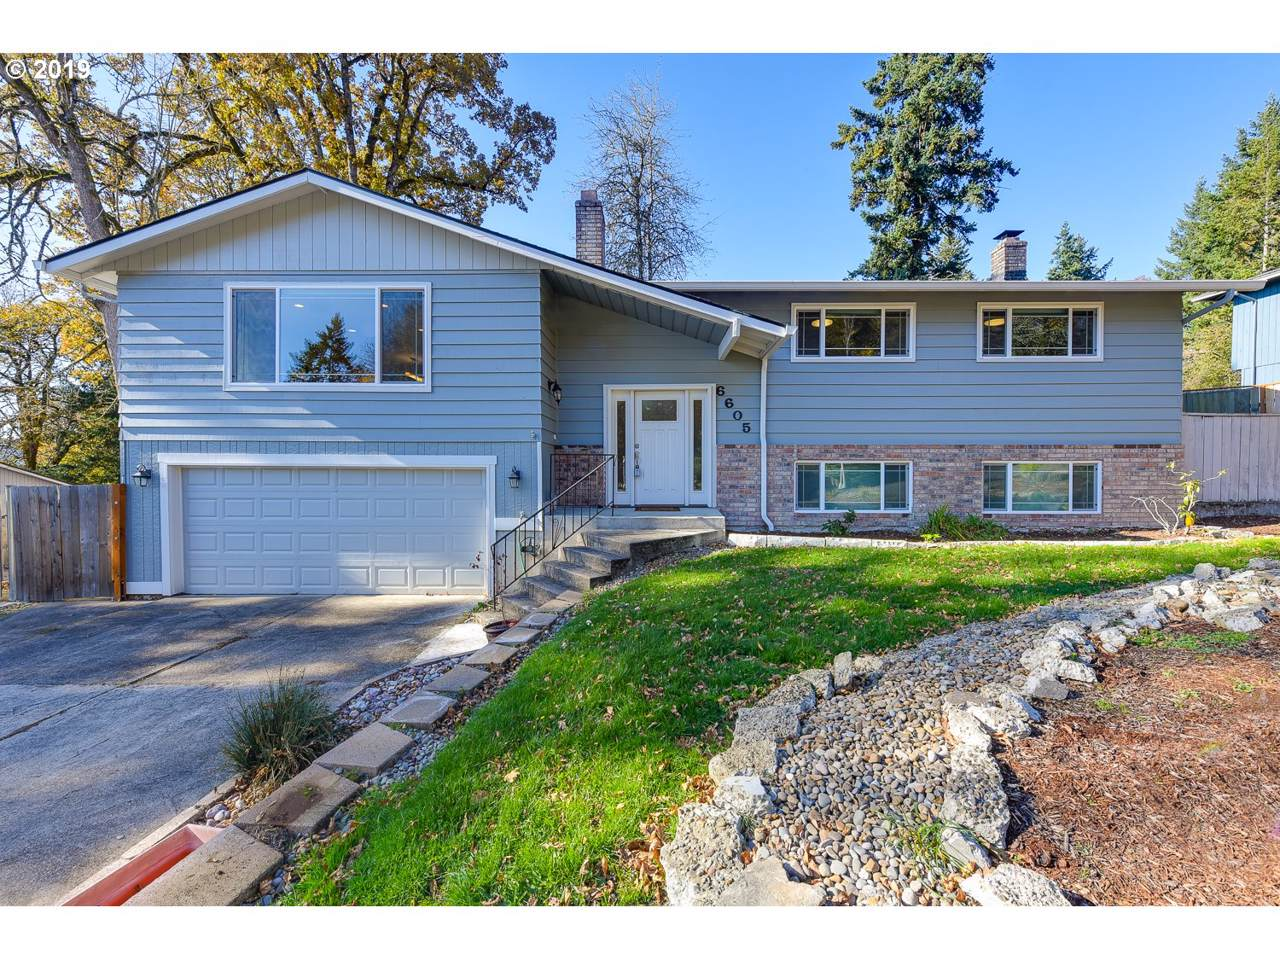 6605 Parkway Dr - Photo 1